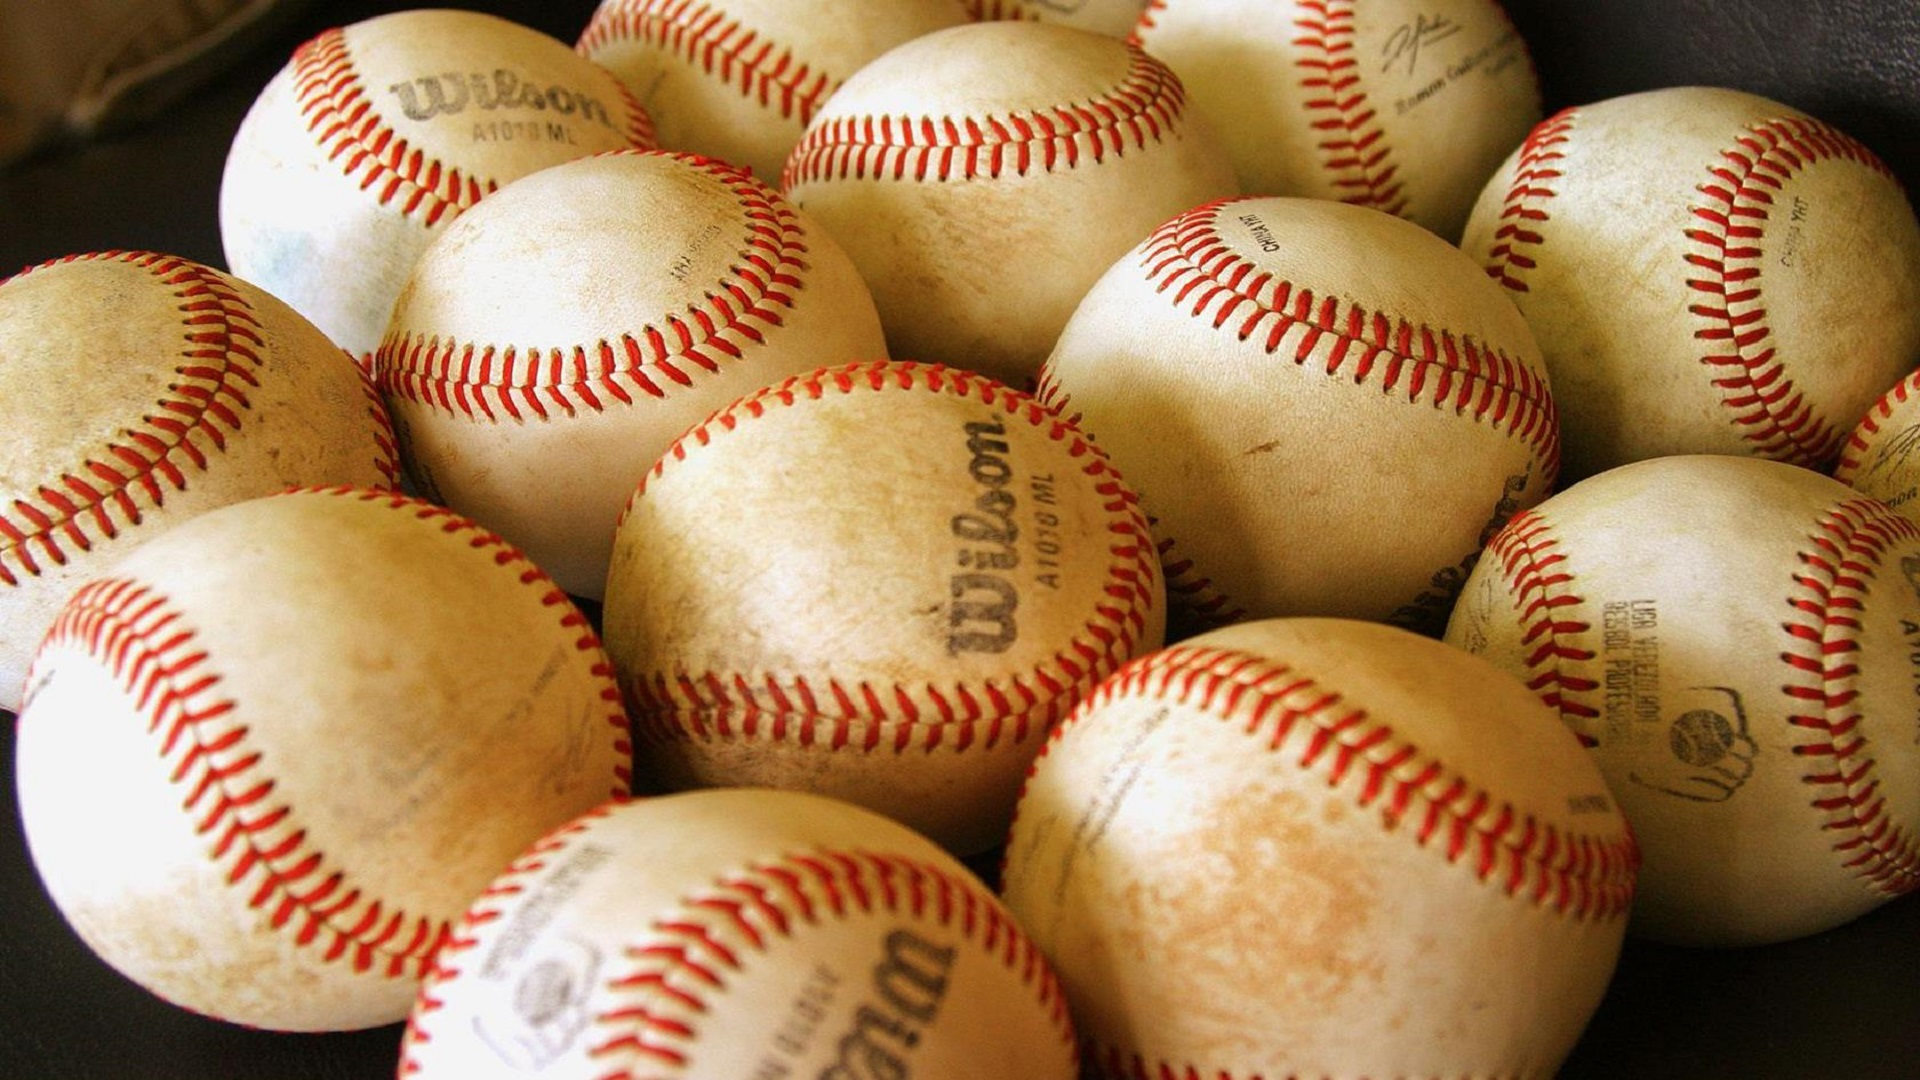 Desktop Wallpaper For Mac Baseball Hd Free